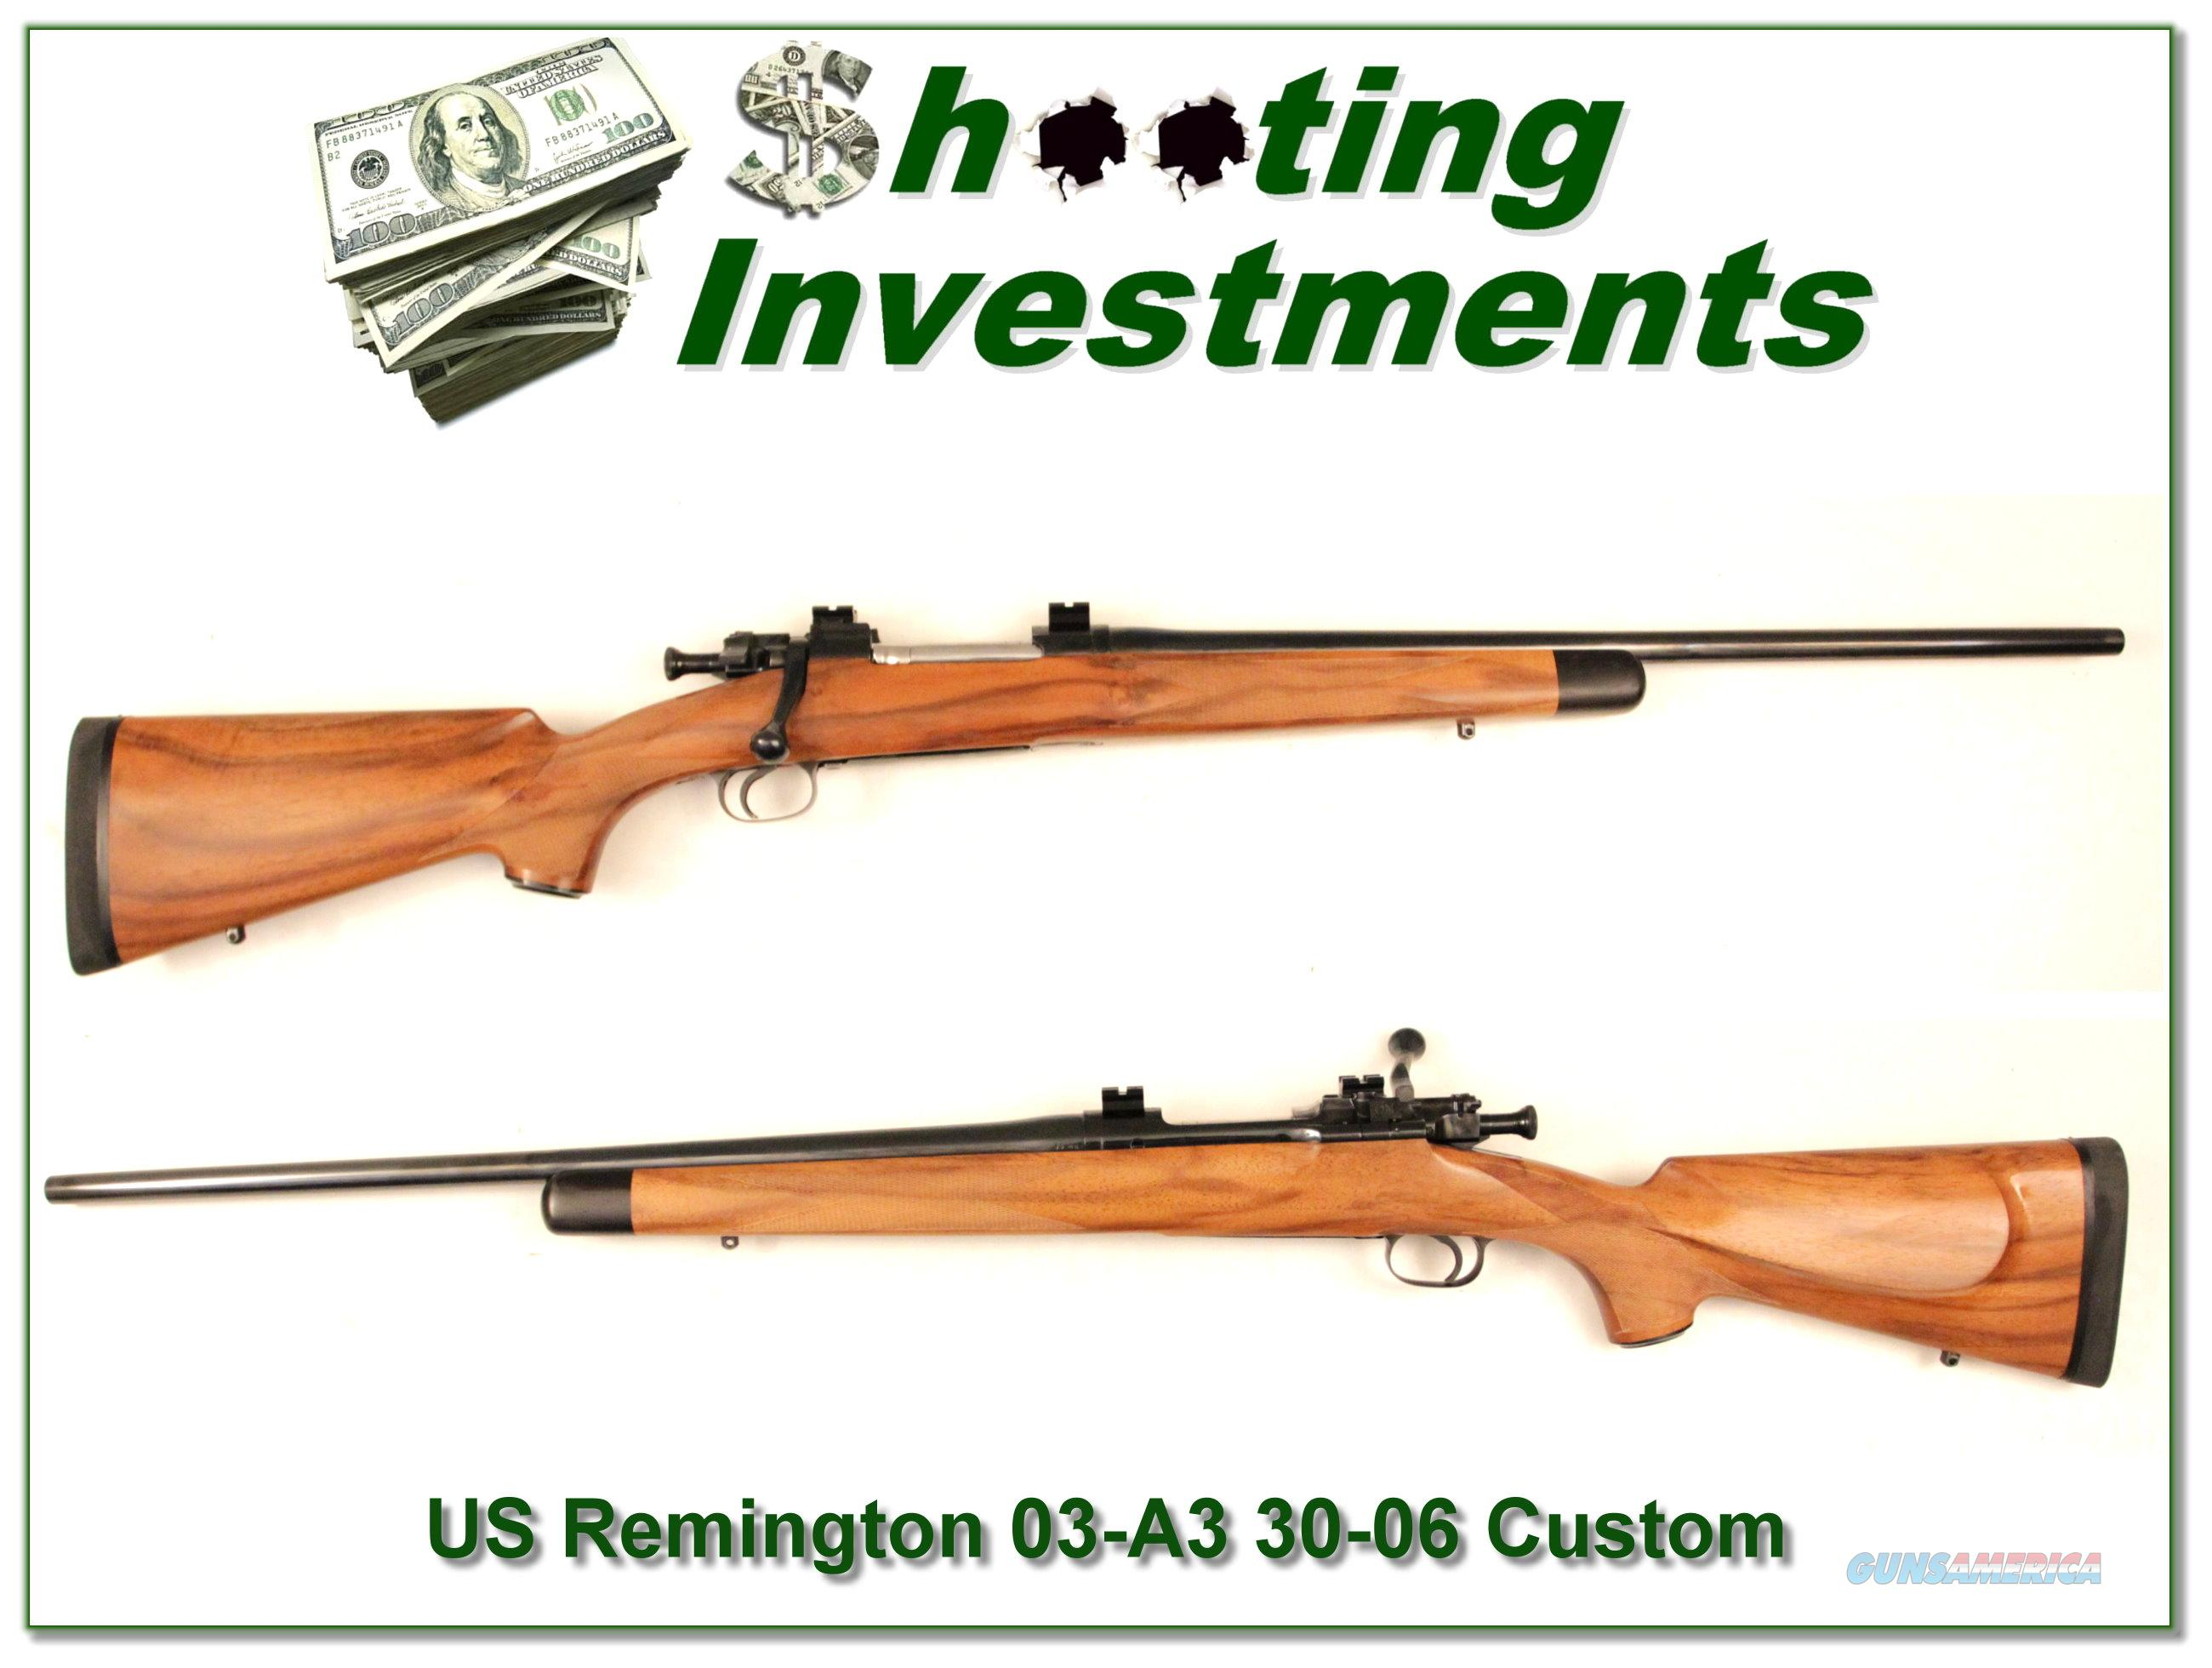 US Remington 03-A3 Custom Excellent!  Guns > Rifles > Remington Rifles - Modern > Bolt Action Non-Model 700 > Sporting